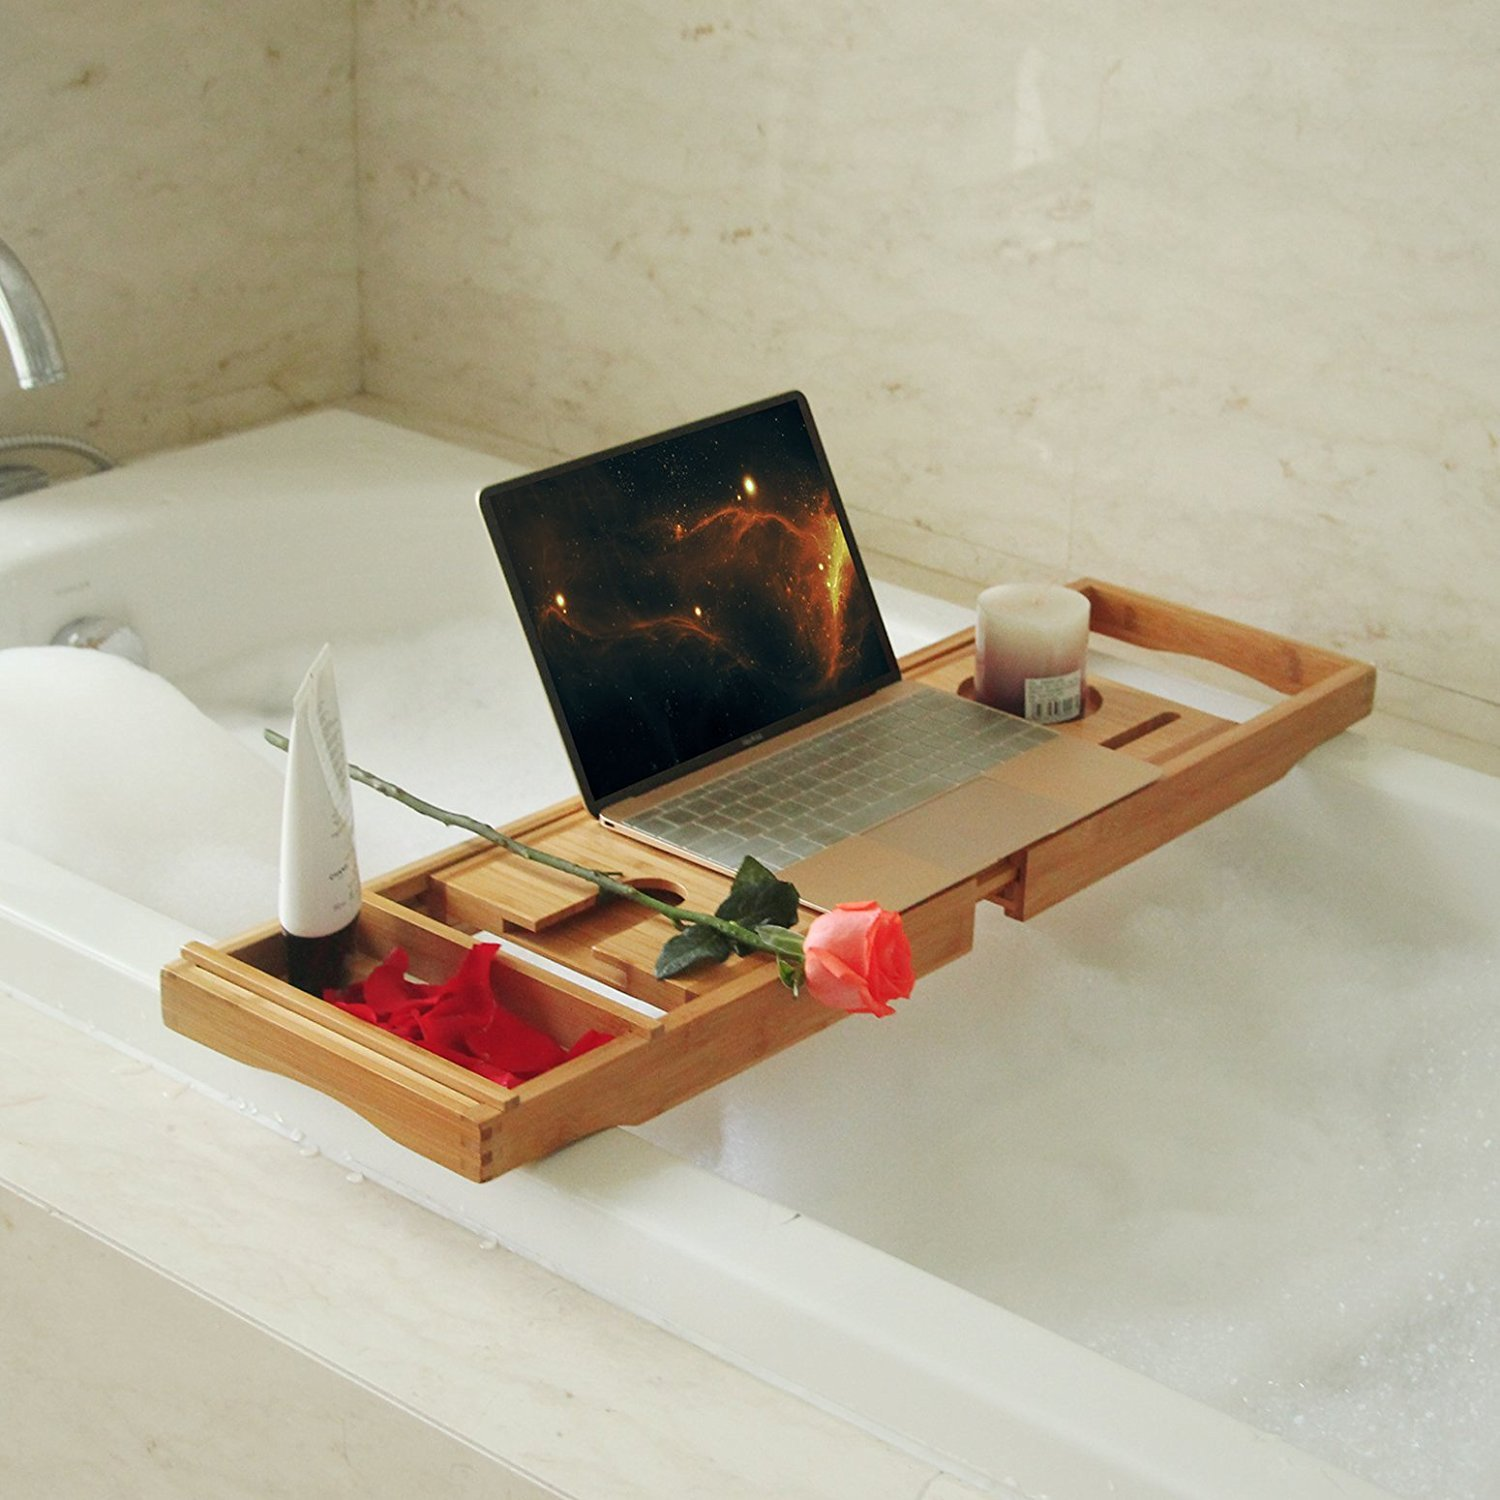 BOSSJOY Luxury Wood Bamboo Bathtub Bath Tub Caddy Tray with Extending Sides Built in Book Tablet Phone Wineglass Holder COMIN18JU094404